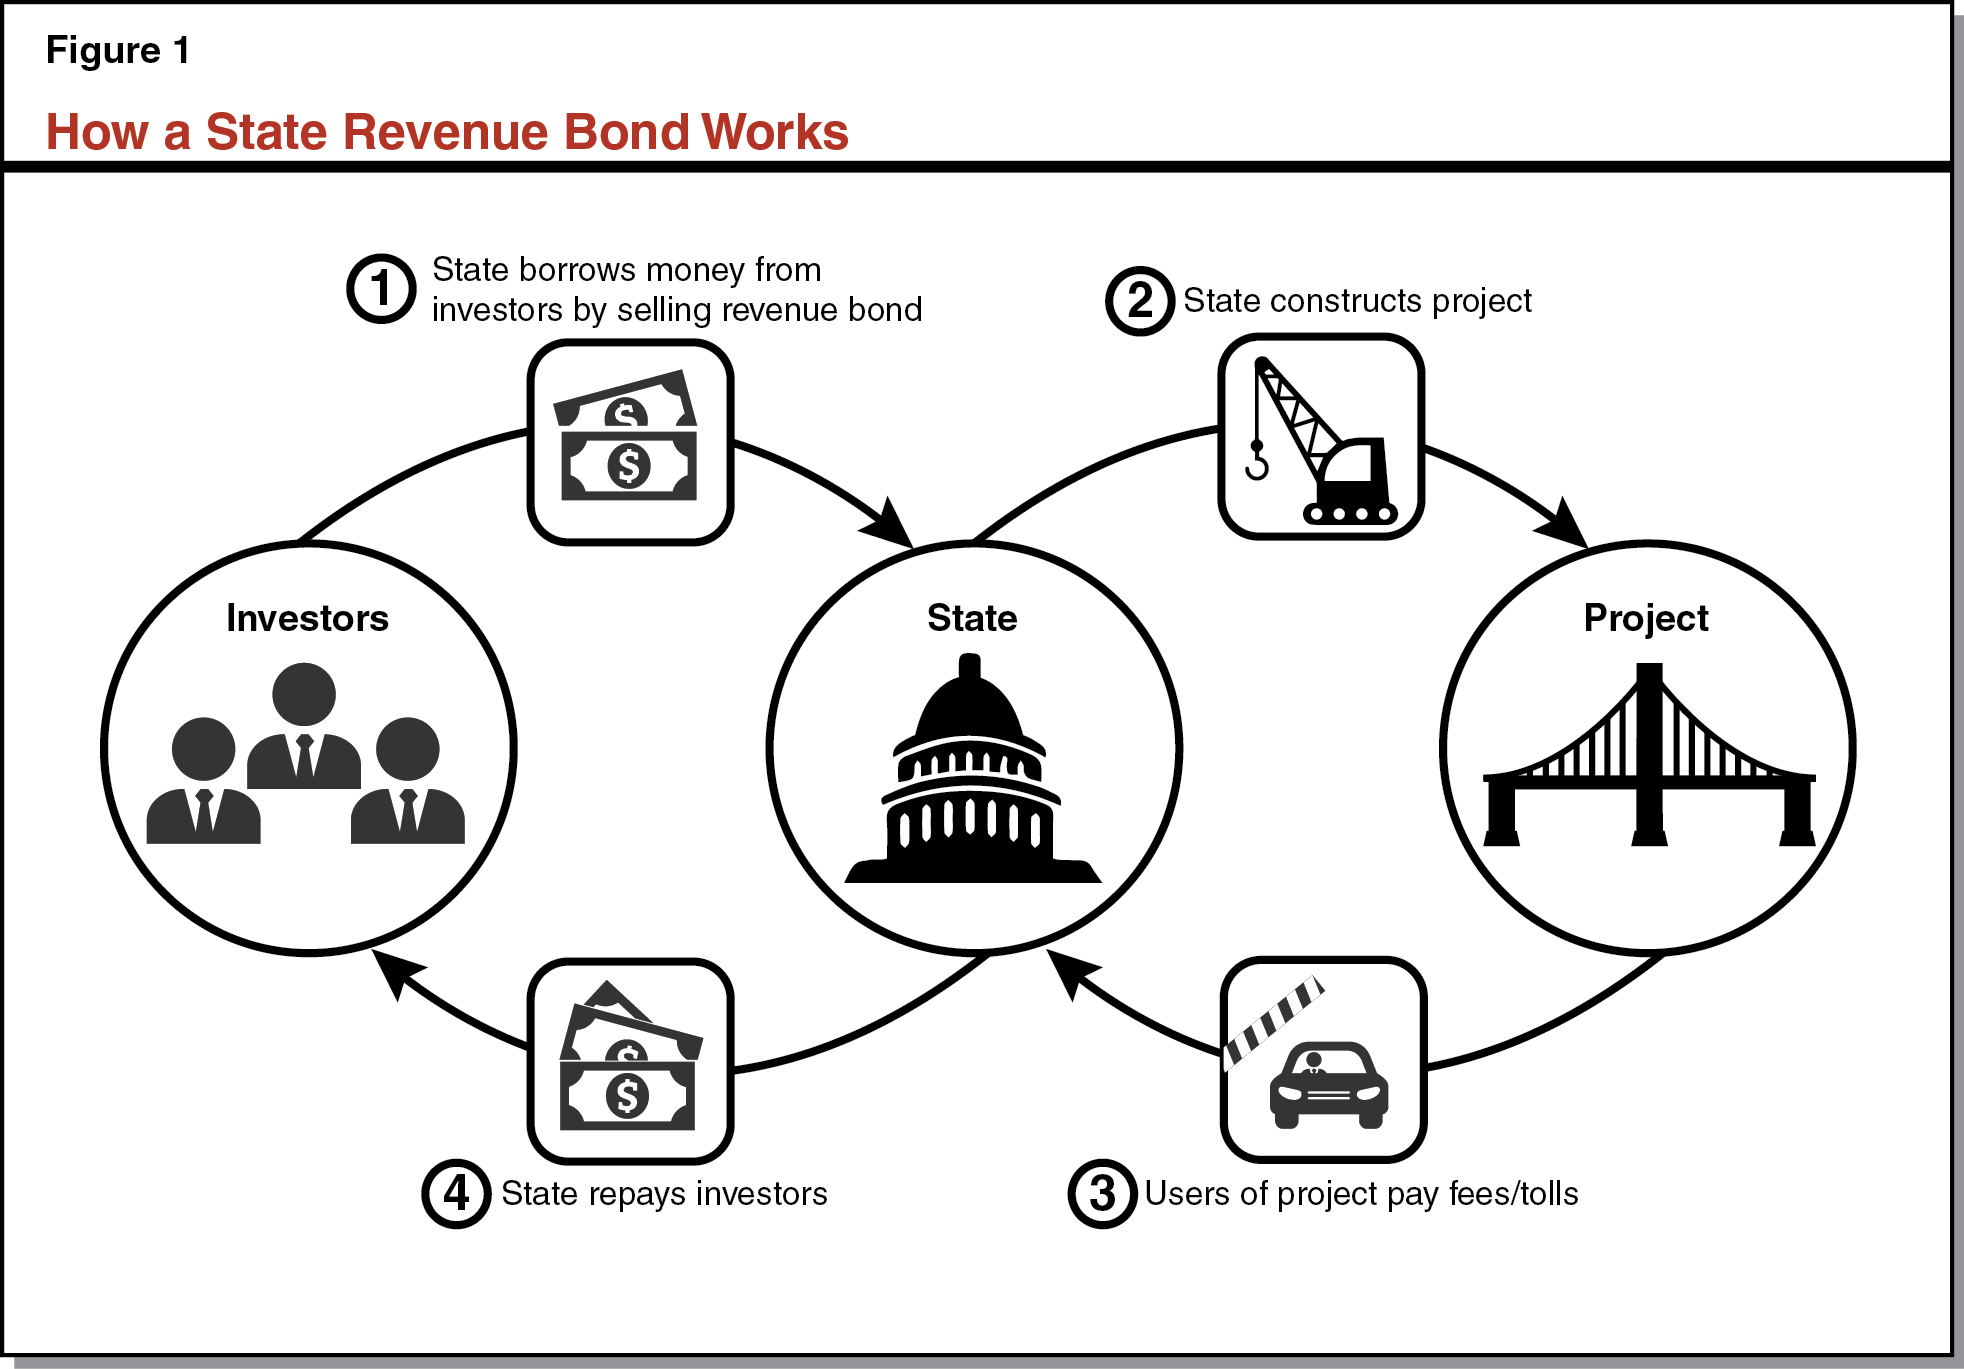 Figure 1 - How a State Revenue Bond Works